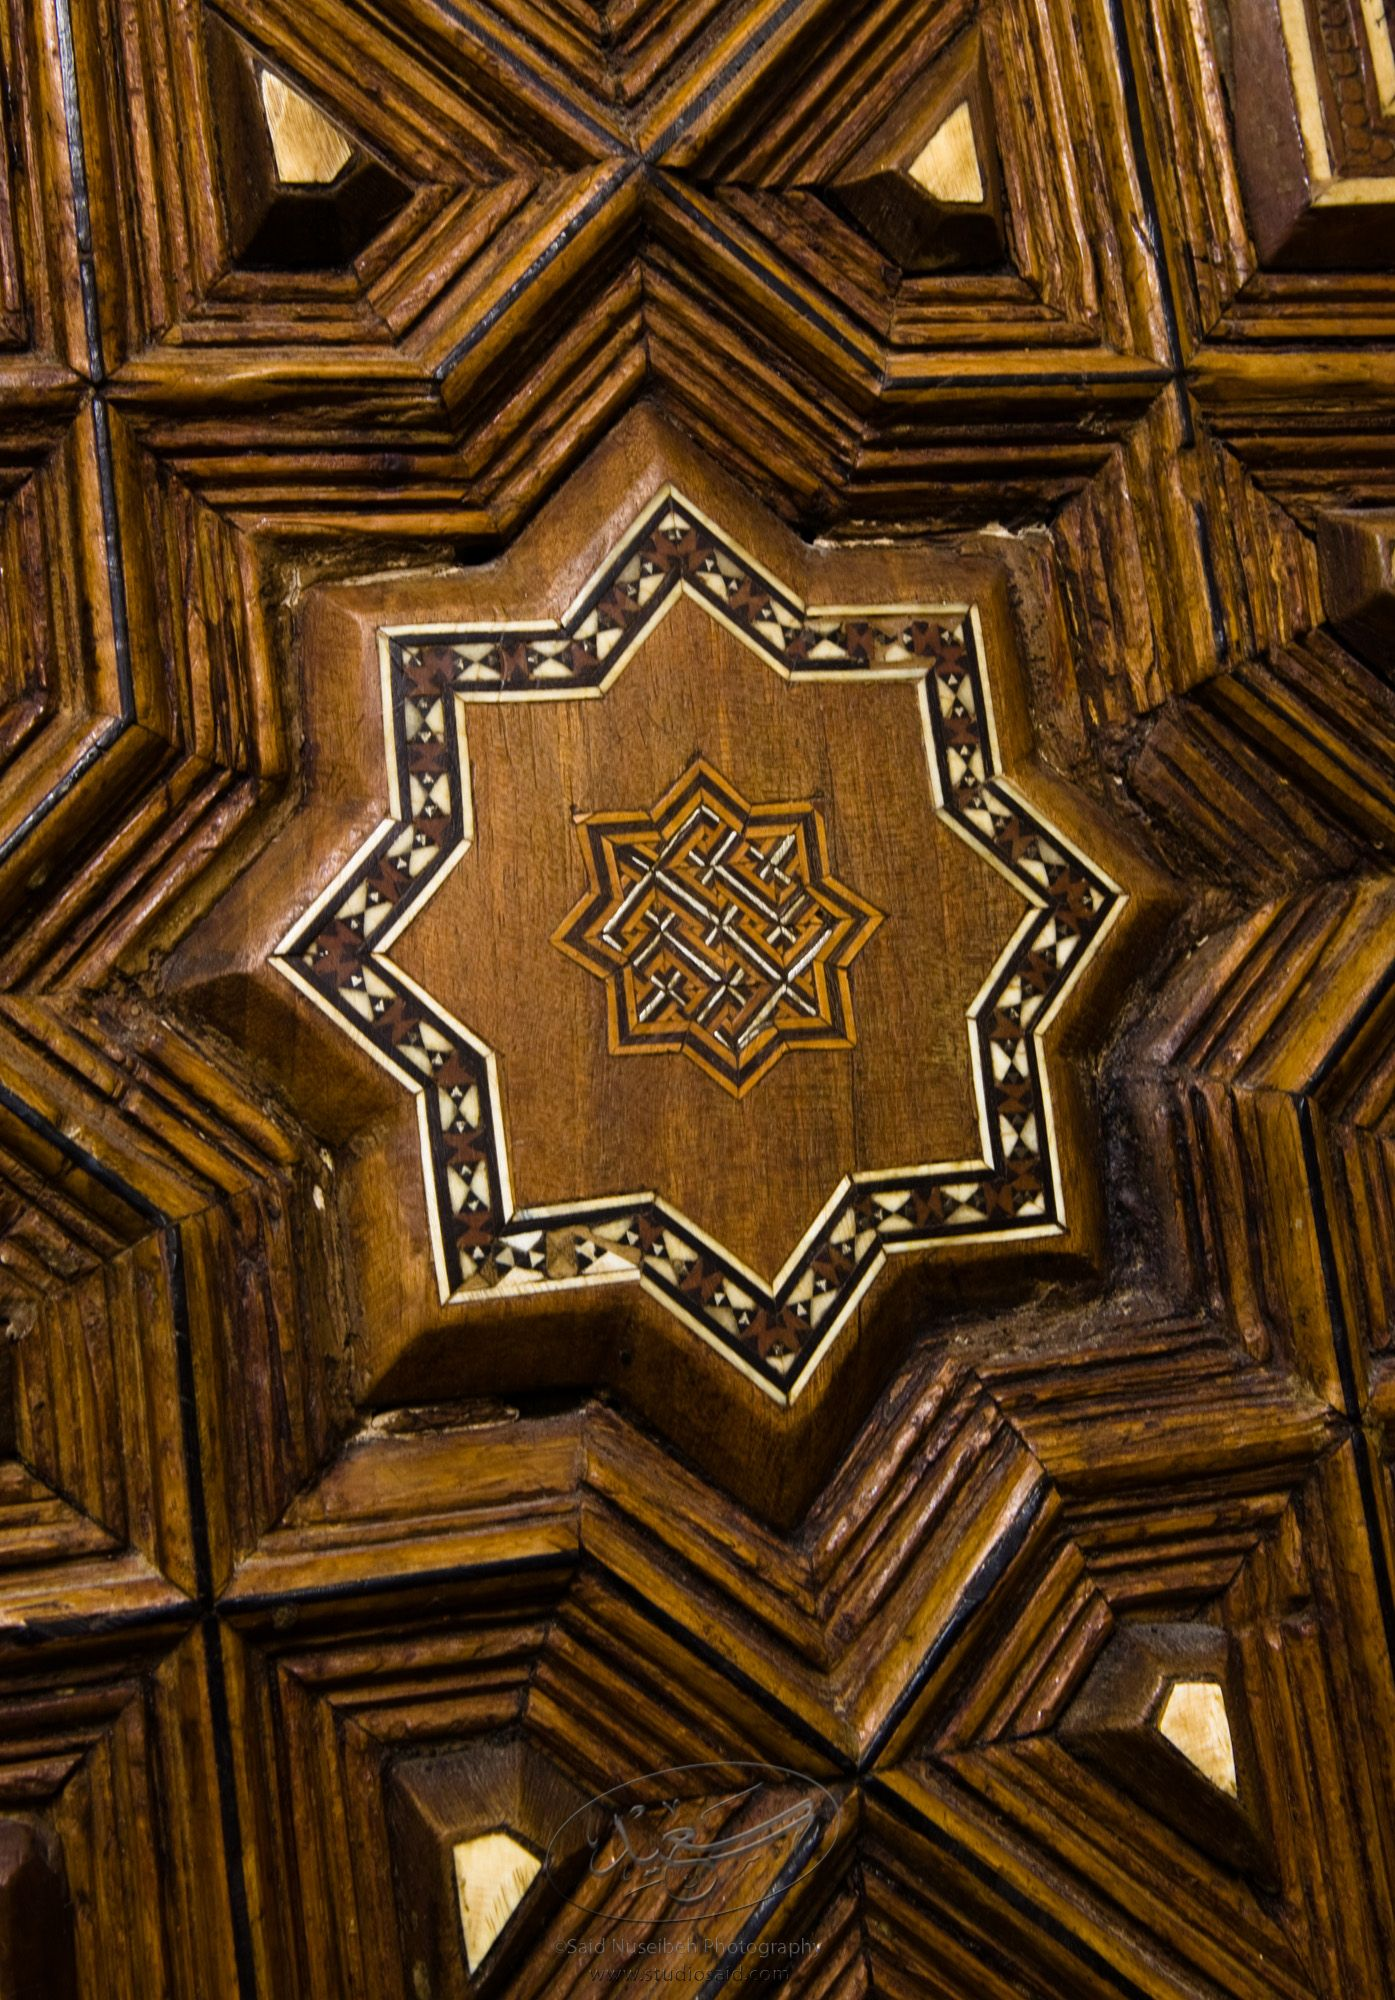 """Octagons. Minbar, Carved Woodwork and Inlay Detail""The late-13th / early-14th c. Mamluk minbar, or pulpit, of Sultan al-Nasir Muhammad, the ninth Mamluk Sultan from Cairo and son of Qalawun. The minbar was located in the Umayyad Mosque in Aleppo, Haleb, prior to its damage and disappearance in May 2013."